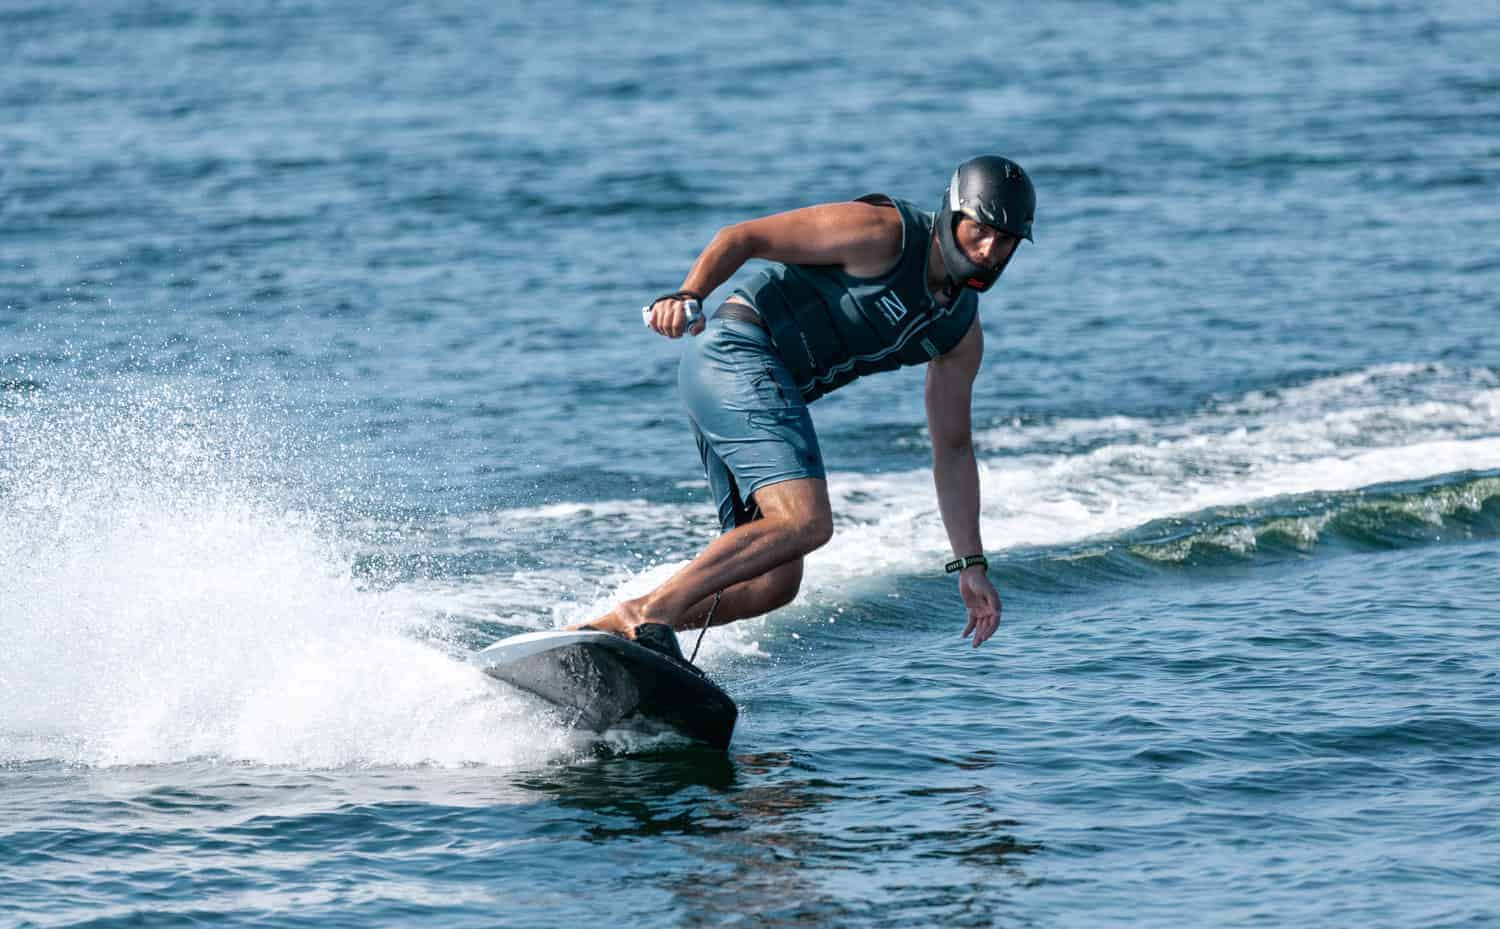 16 Cool Water Sports Gadgets You Wish To Have For Your Summer Holidays 16